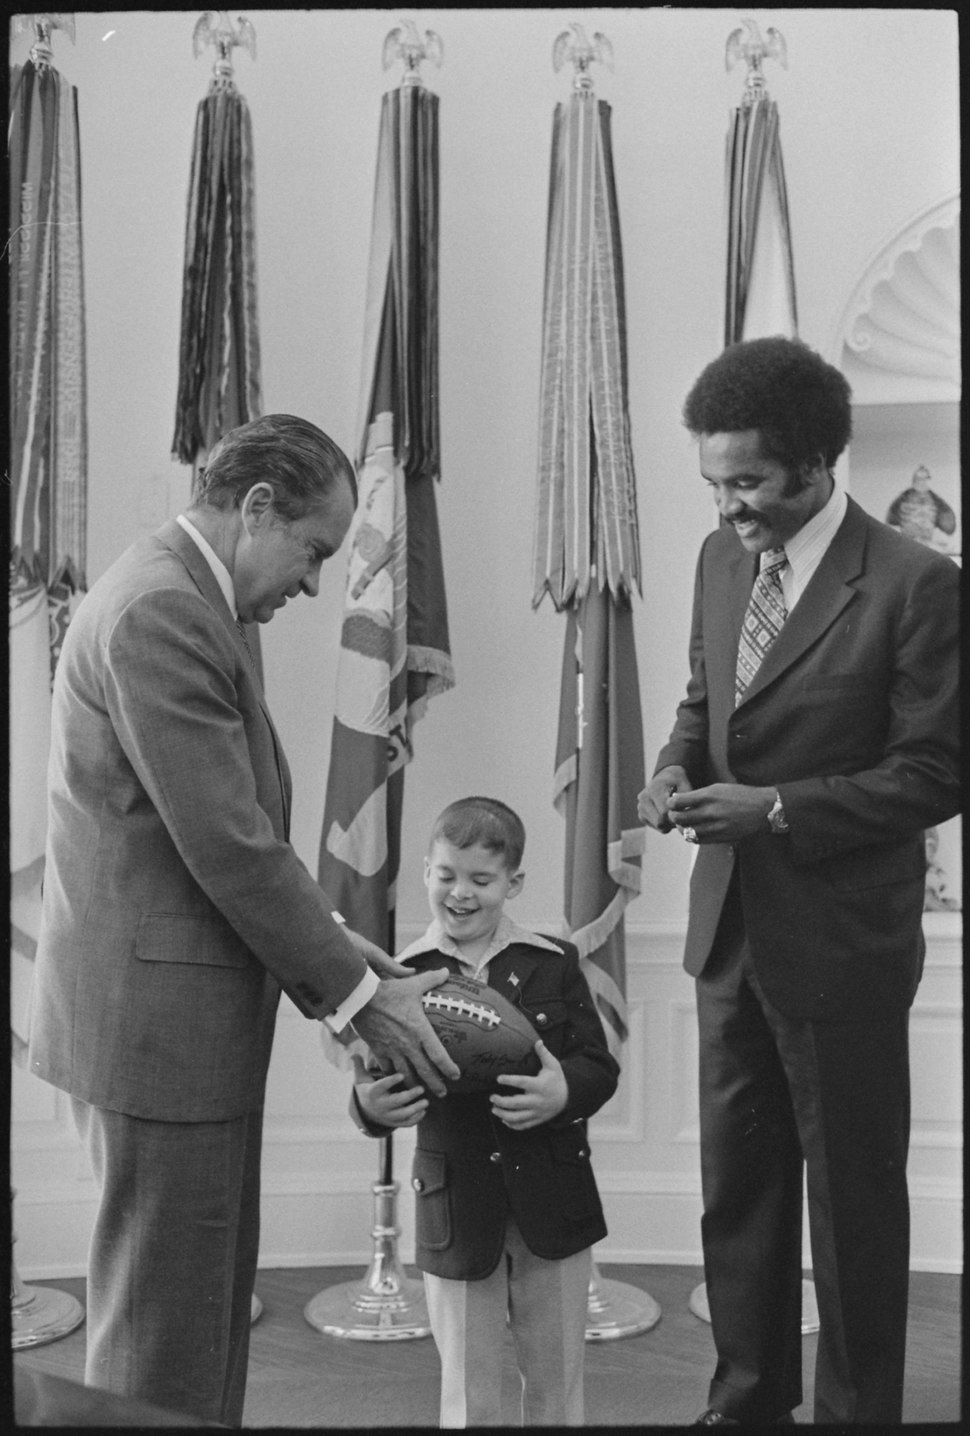 Meeting with 1972 Poster Child of the National Association for Retarded Children - NARA - 194760